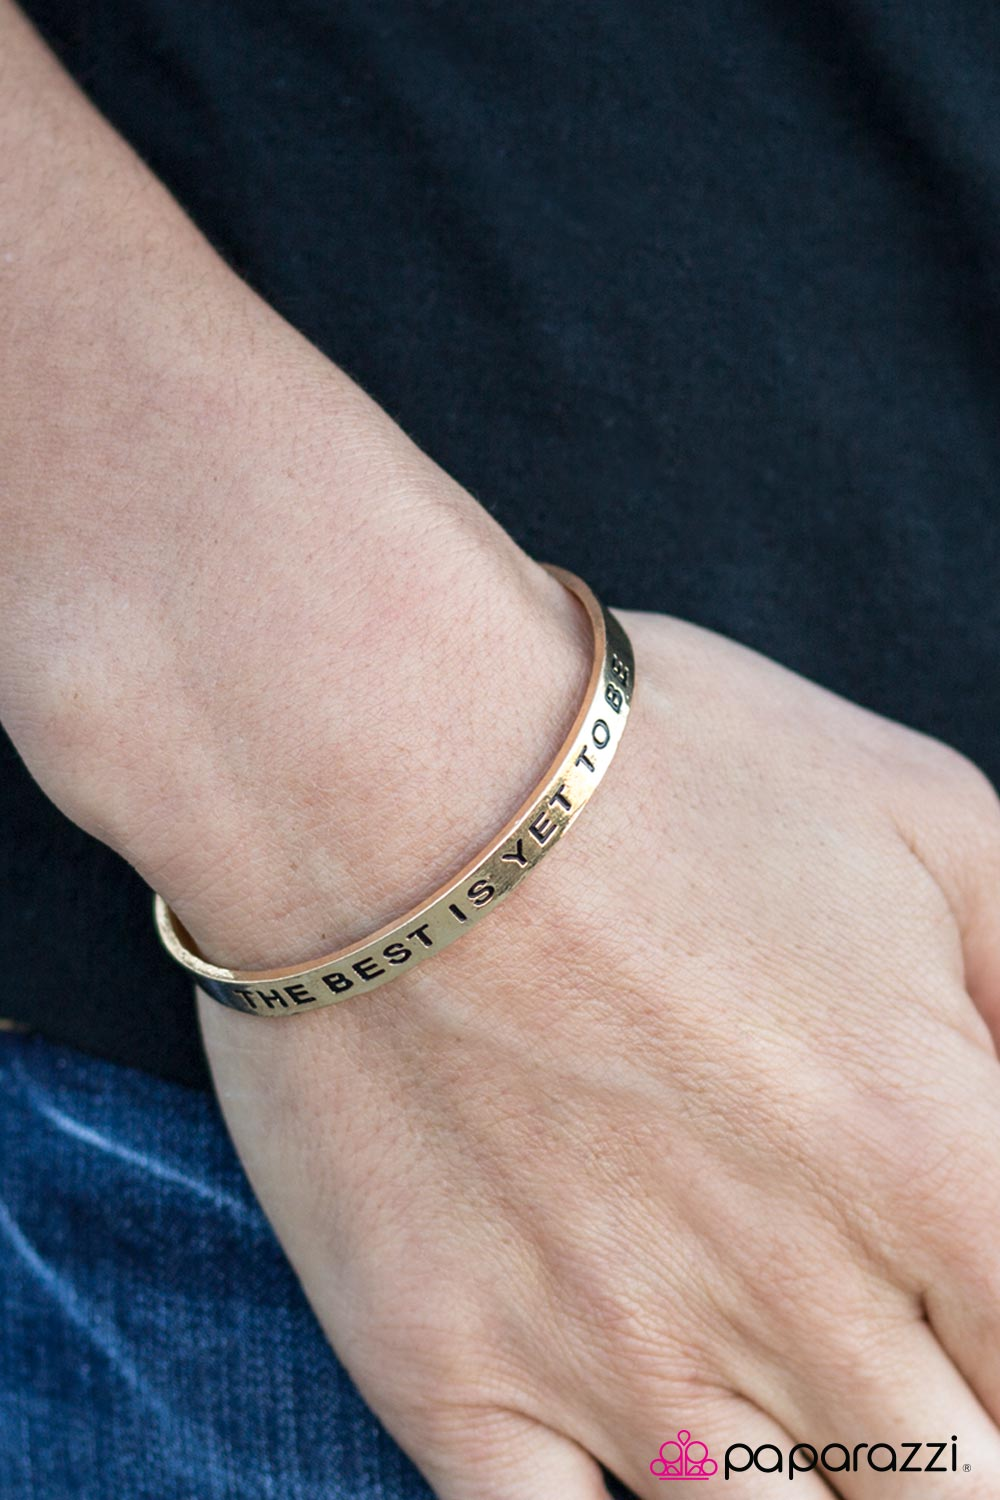 The Best Is Yet To Be - Gold - Paparazzi bracelet